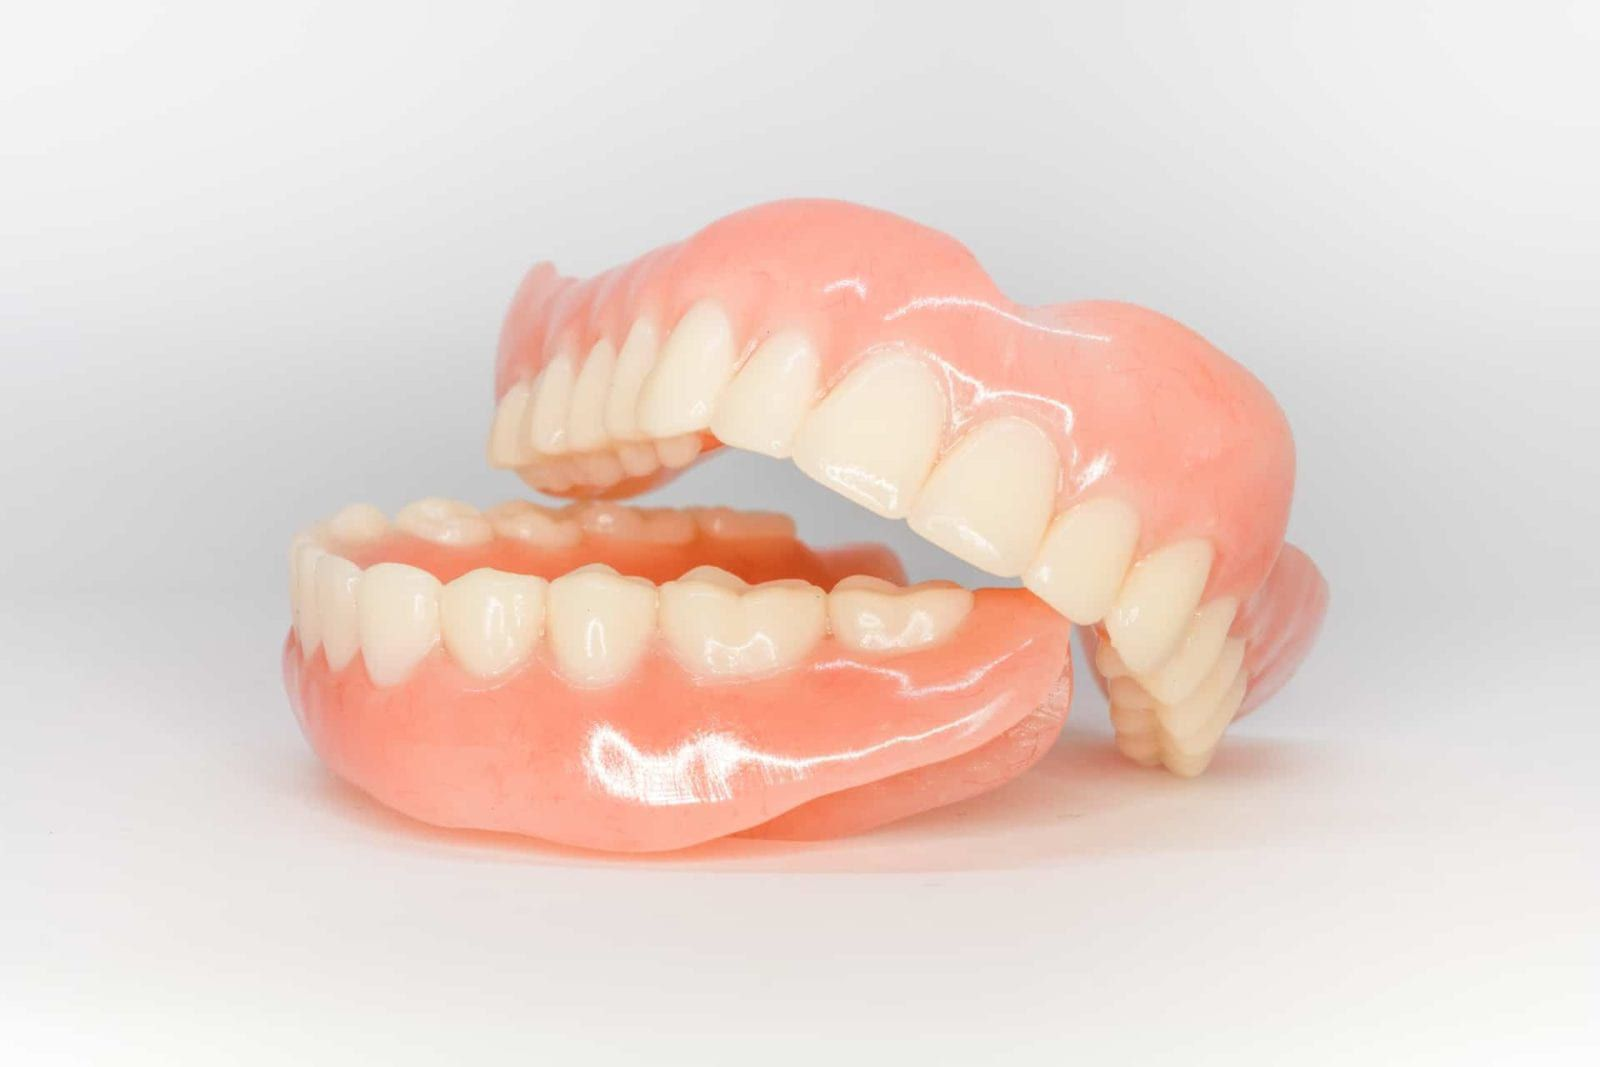 complete denture set on isolated background